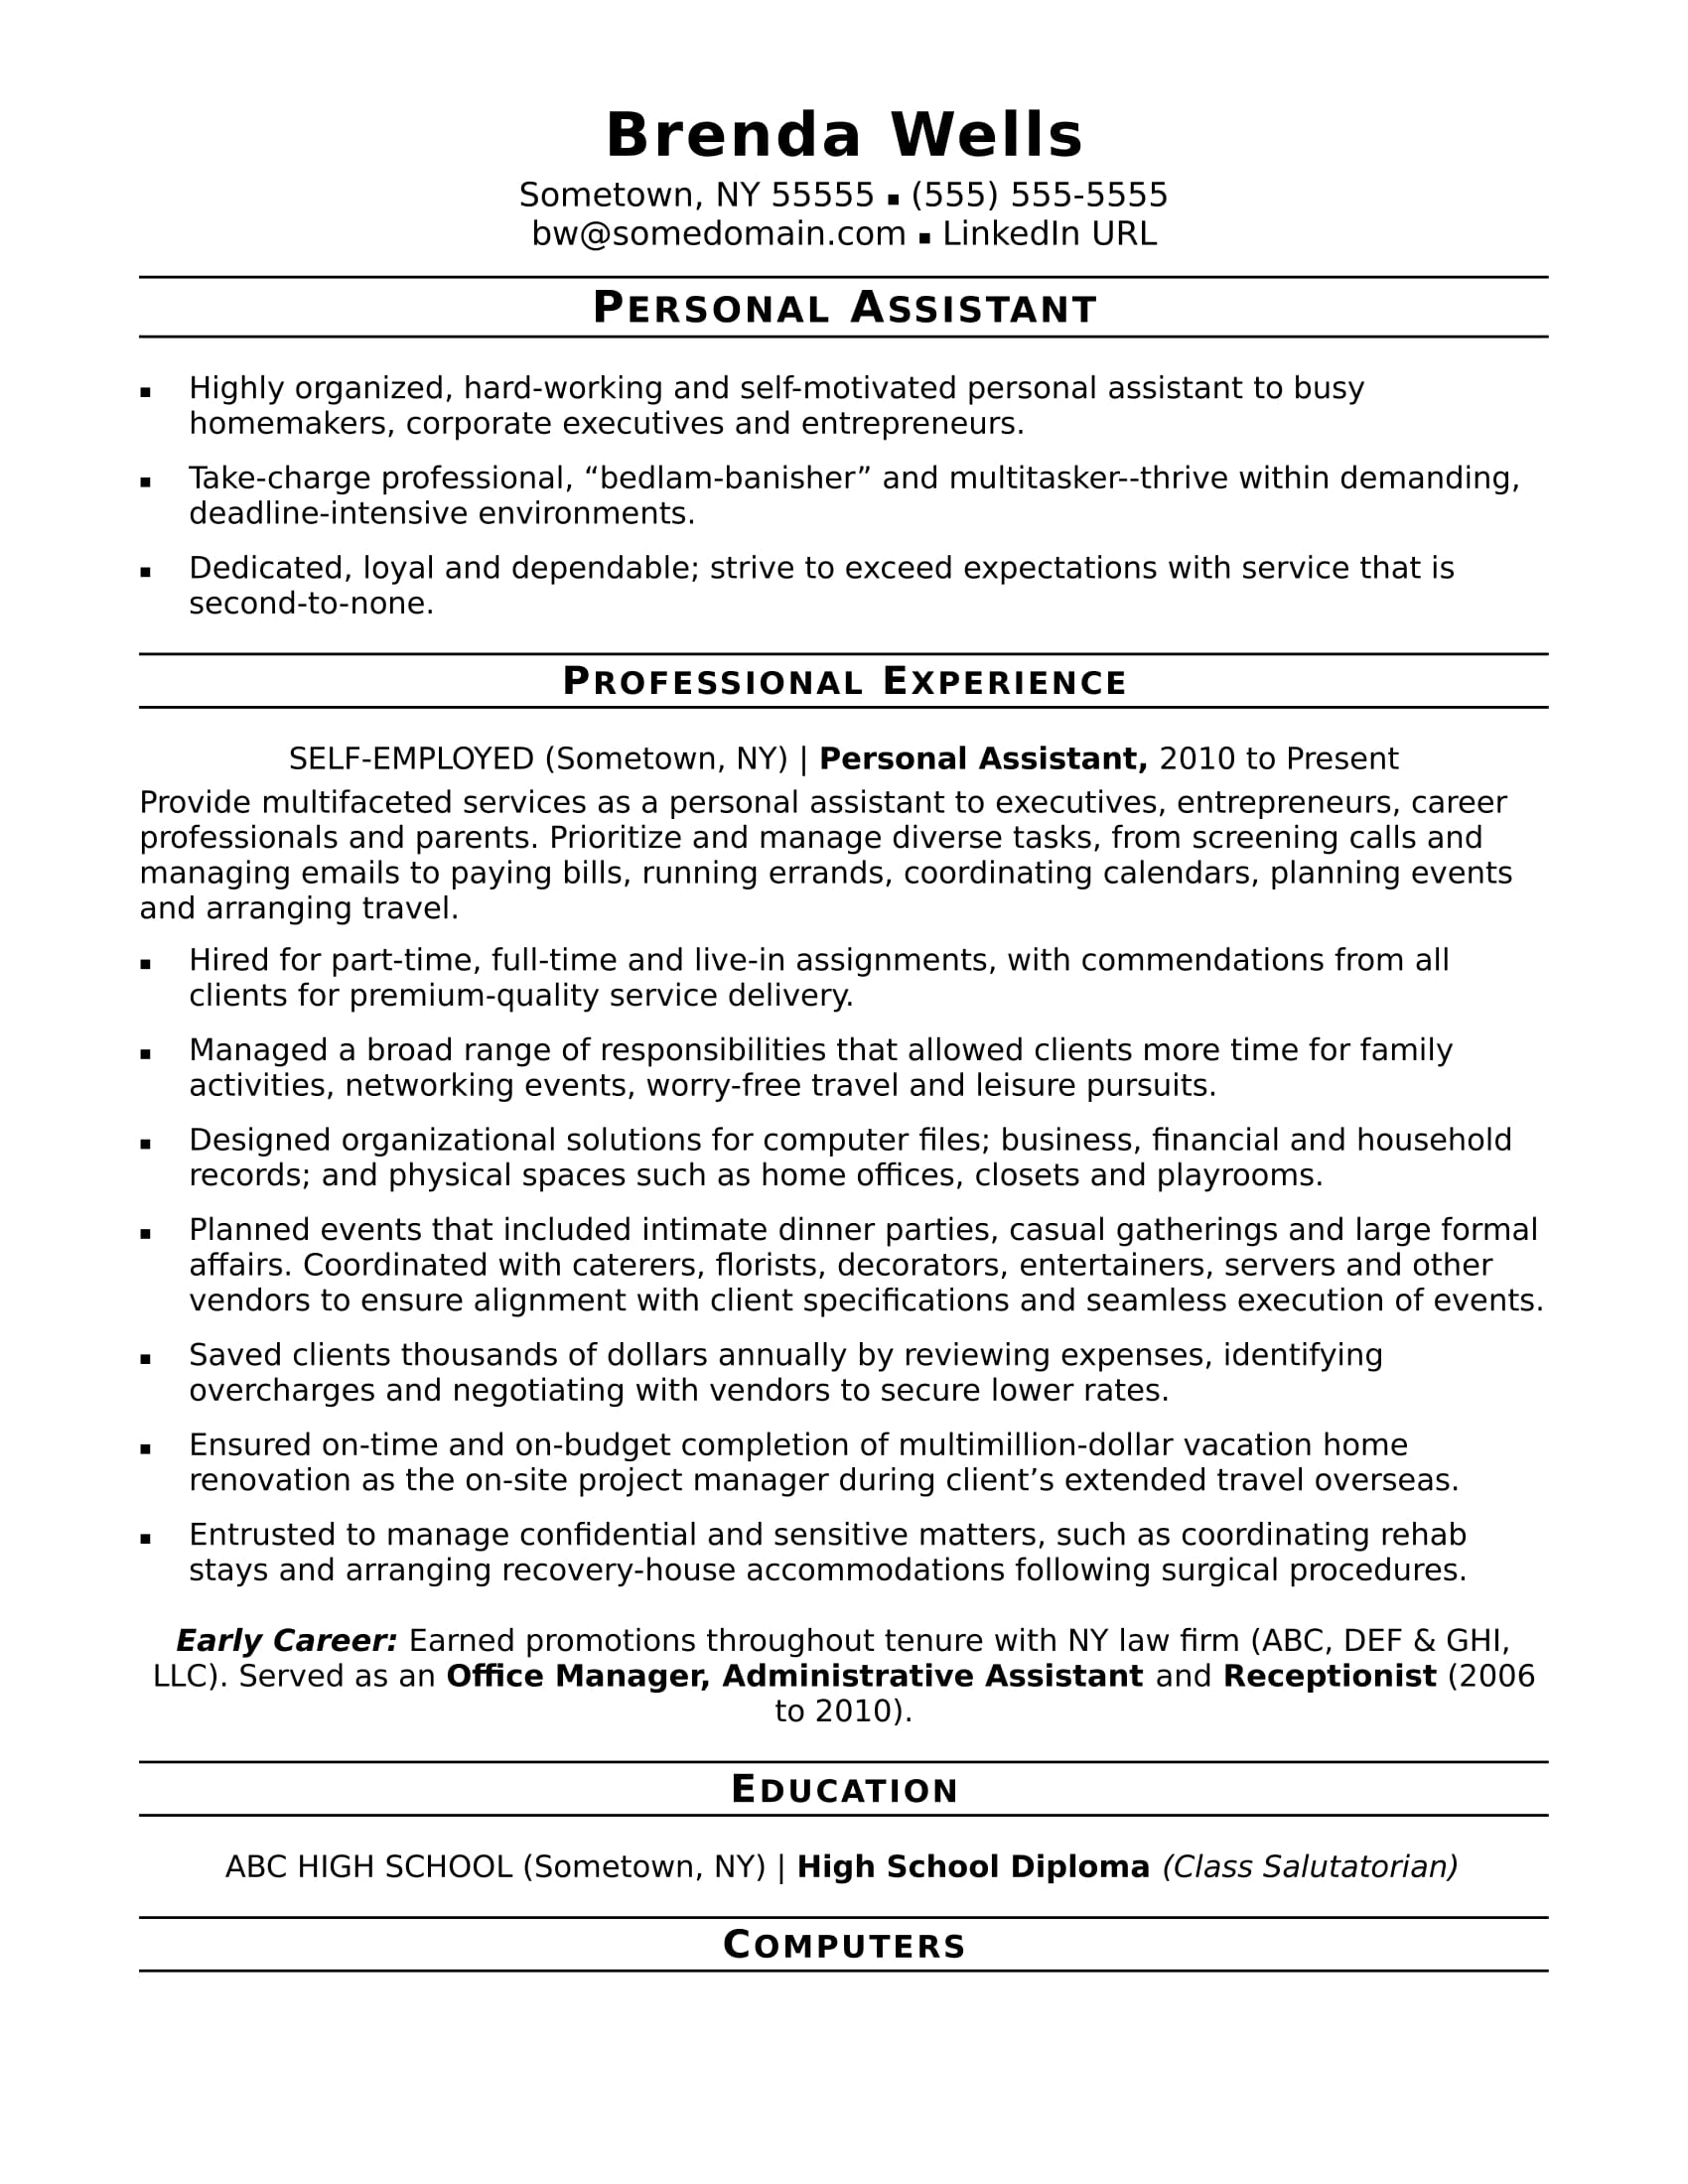 personal assistant resume sample monster self summary for criminal intelligence analyst Resume Self Summary For Resume Sample